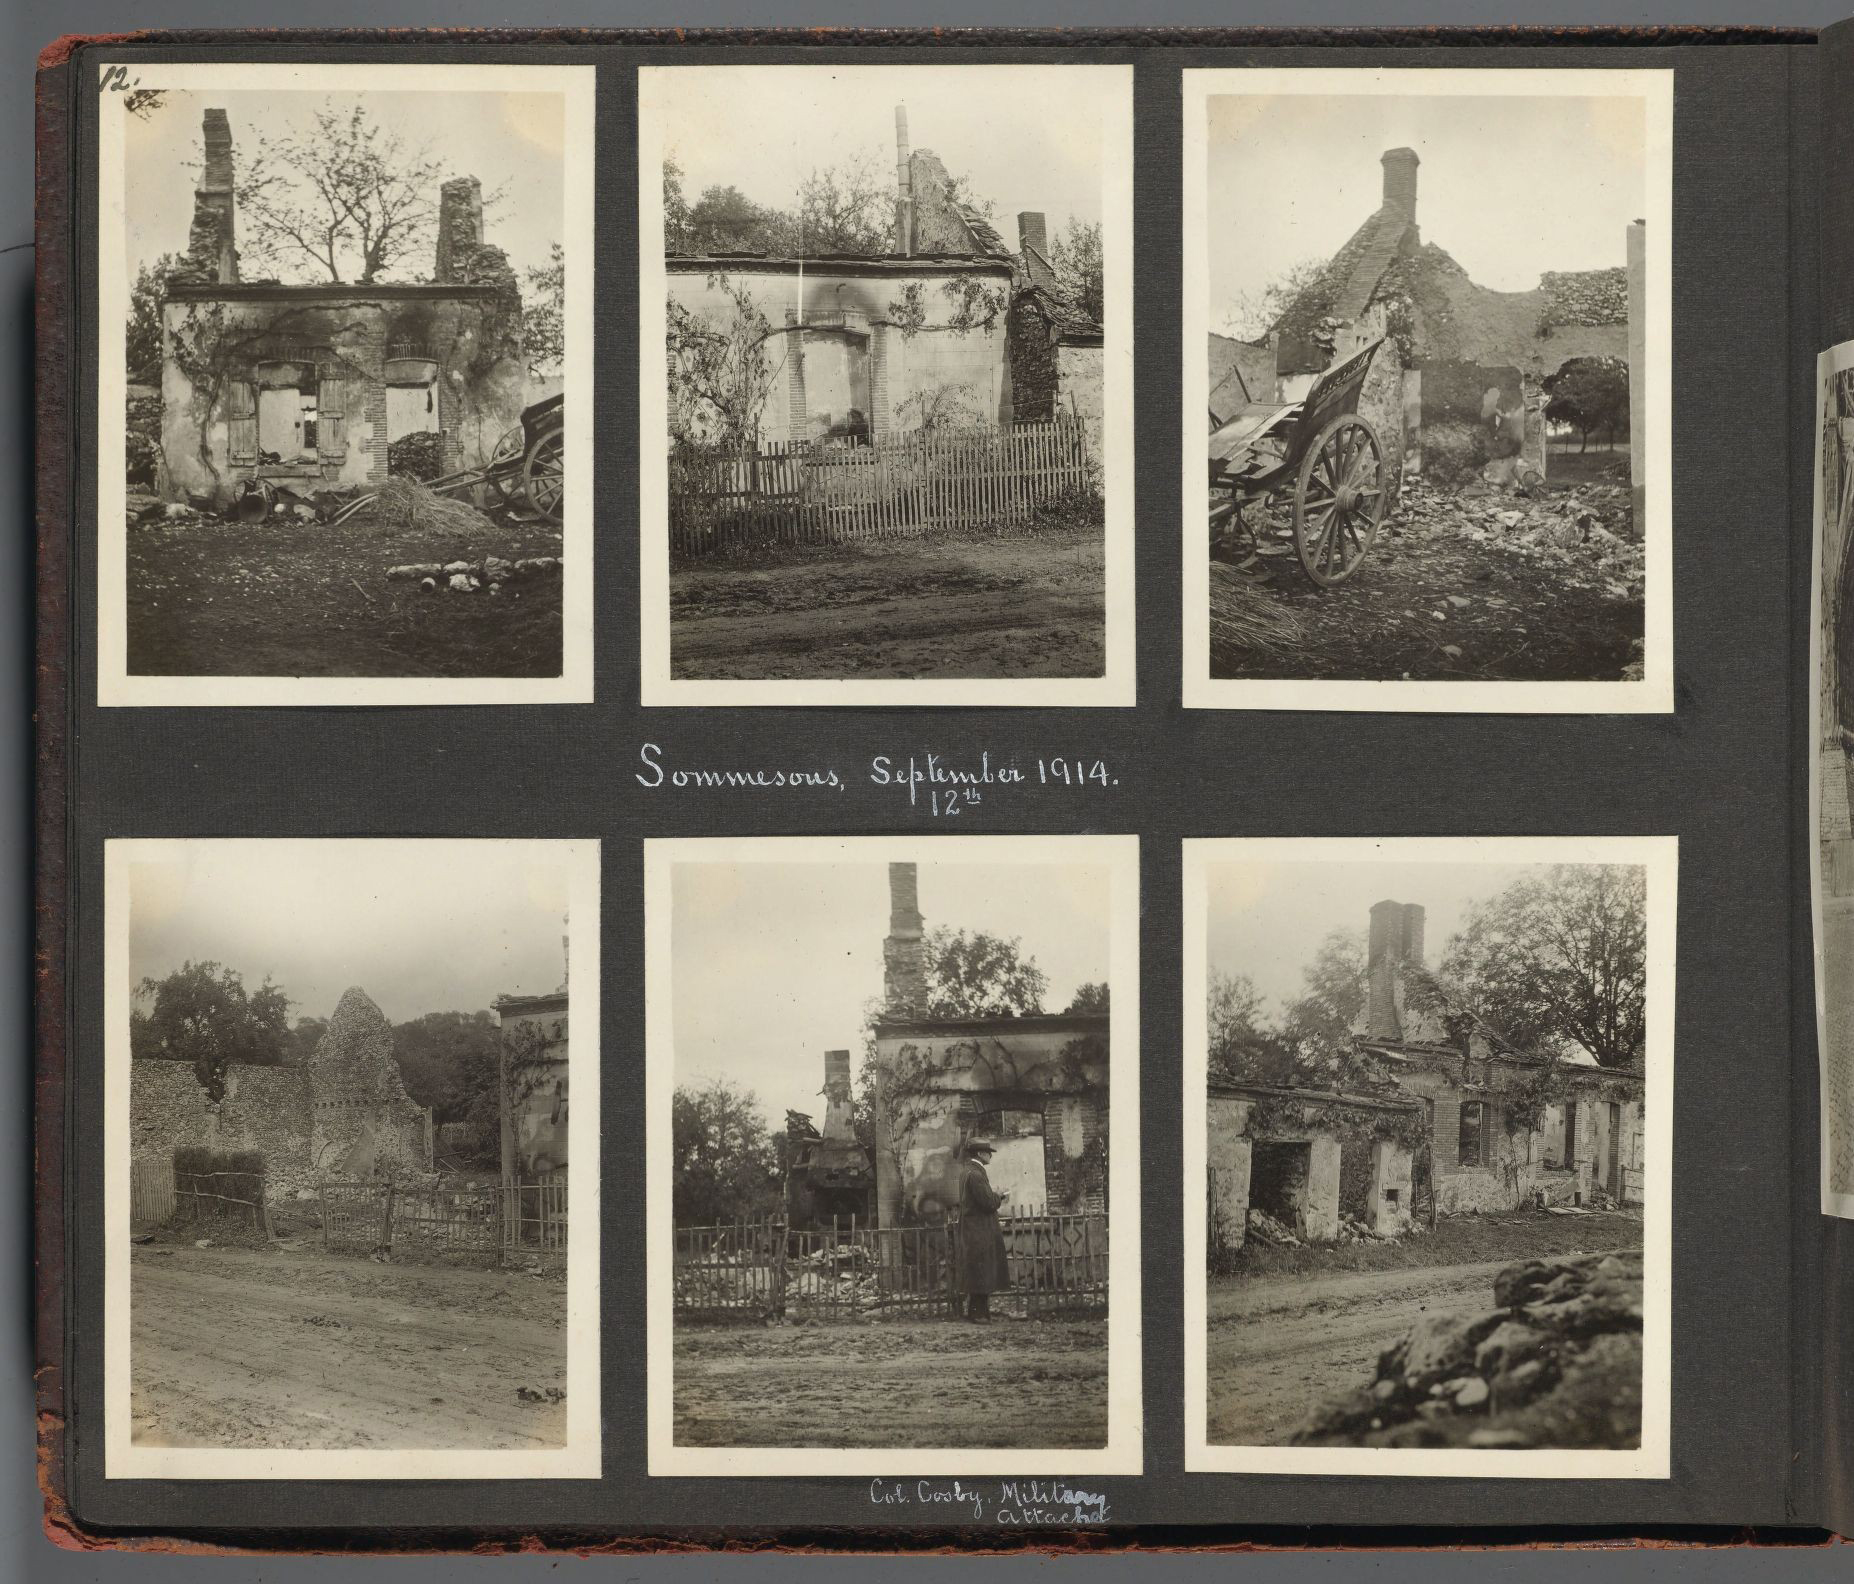 Bombed buildings at Sommesous, September 12, 1914.